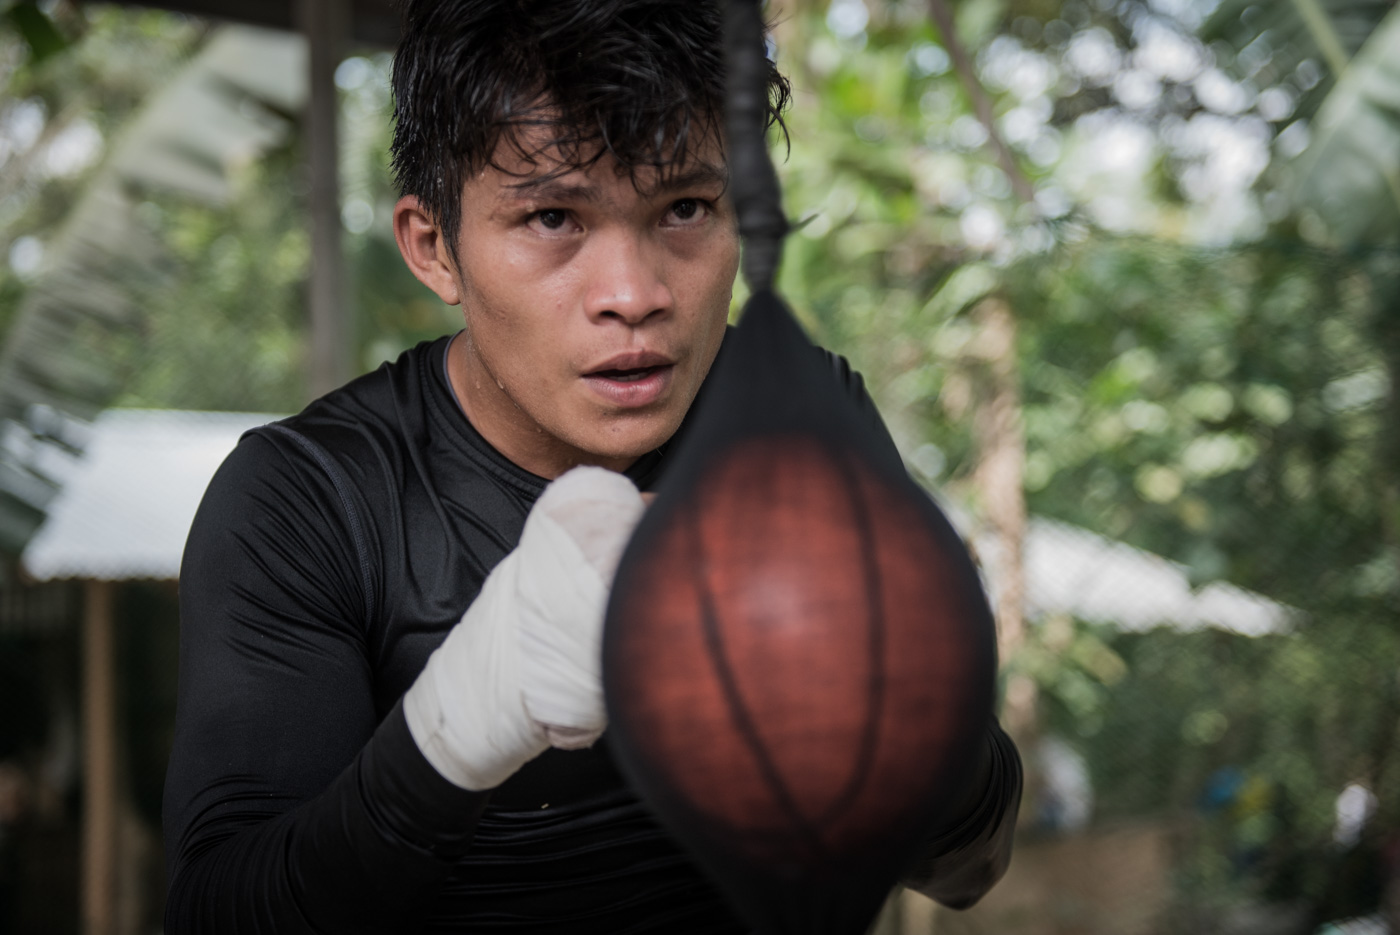 Before becoming champion, Jerwin Ancajas fought poverty and hunger